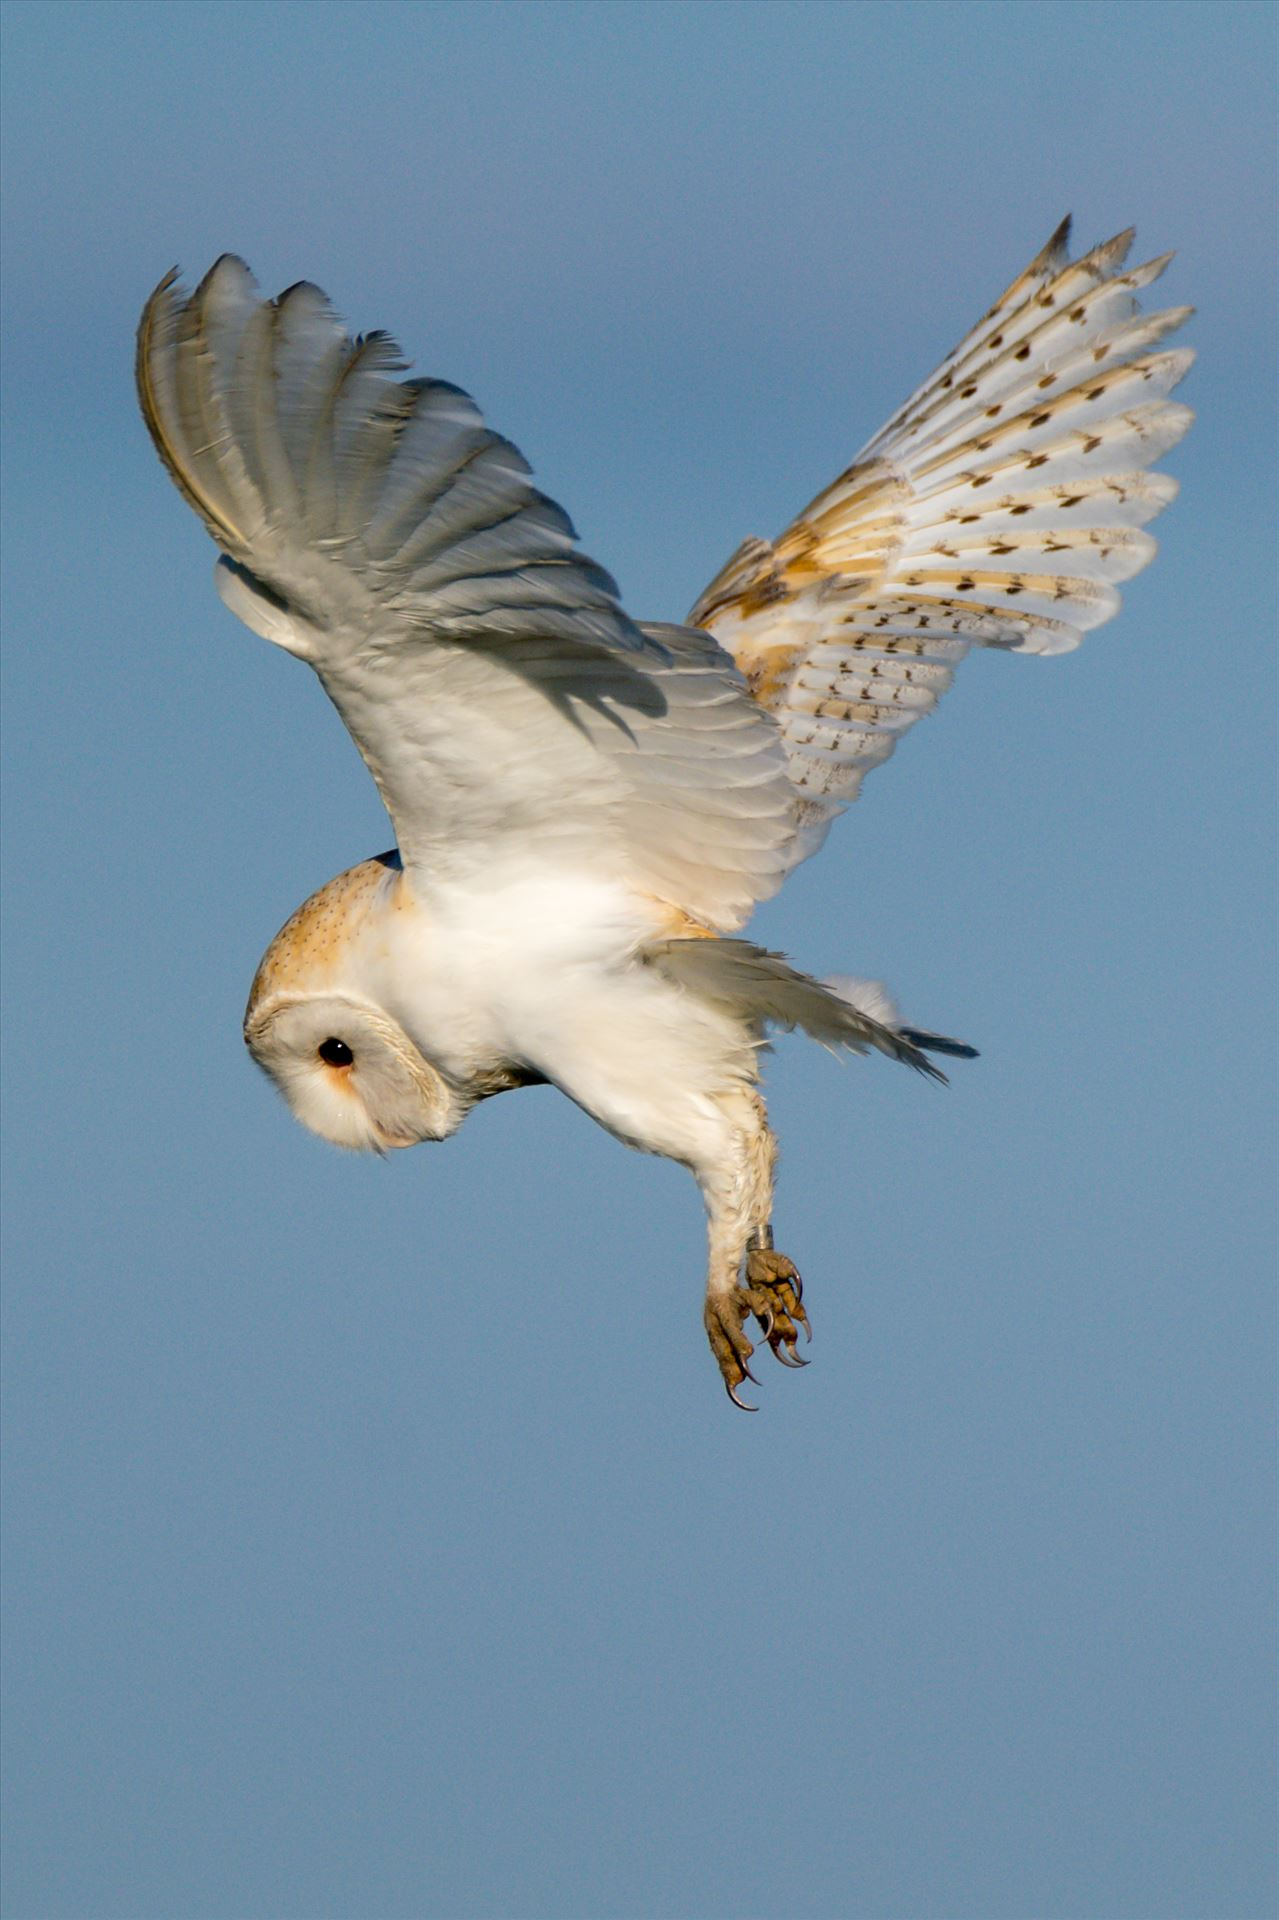 Barn Owl on the hunt 02 - A Barn Owl on the hunt for its breakfast by AJ Stoves Photography